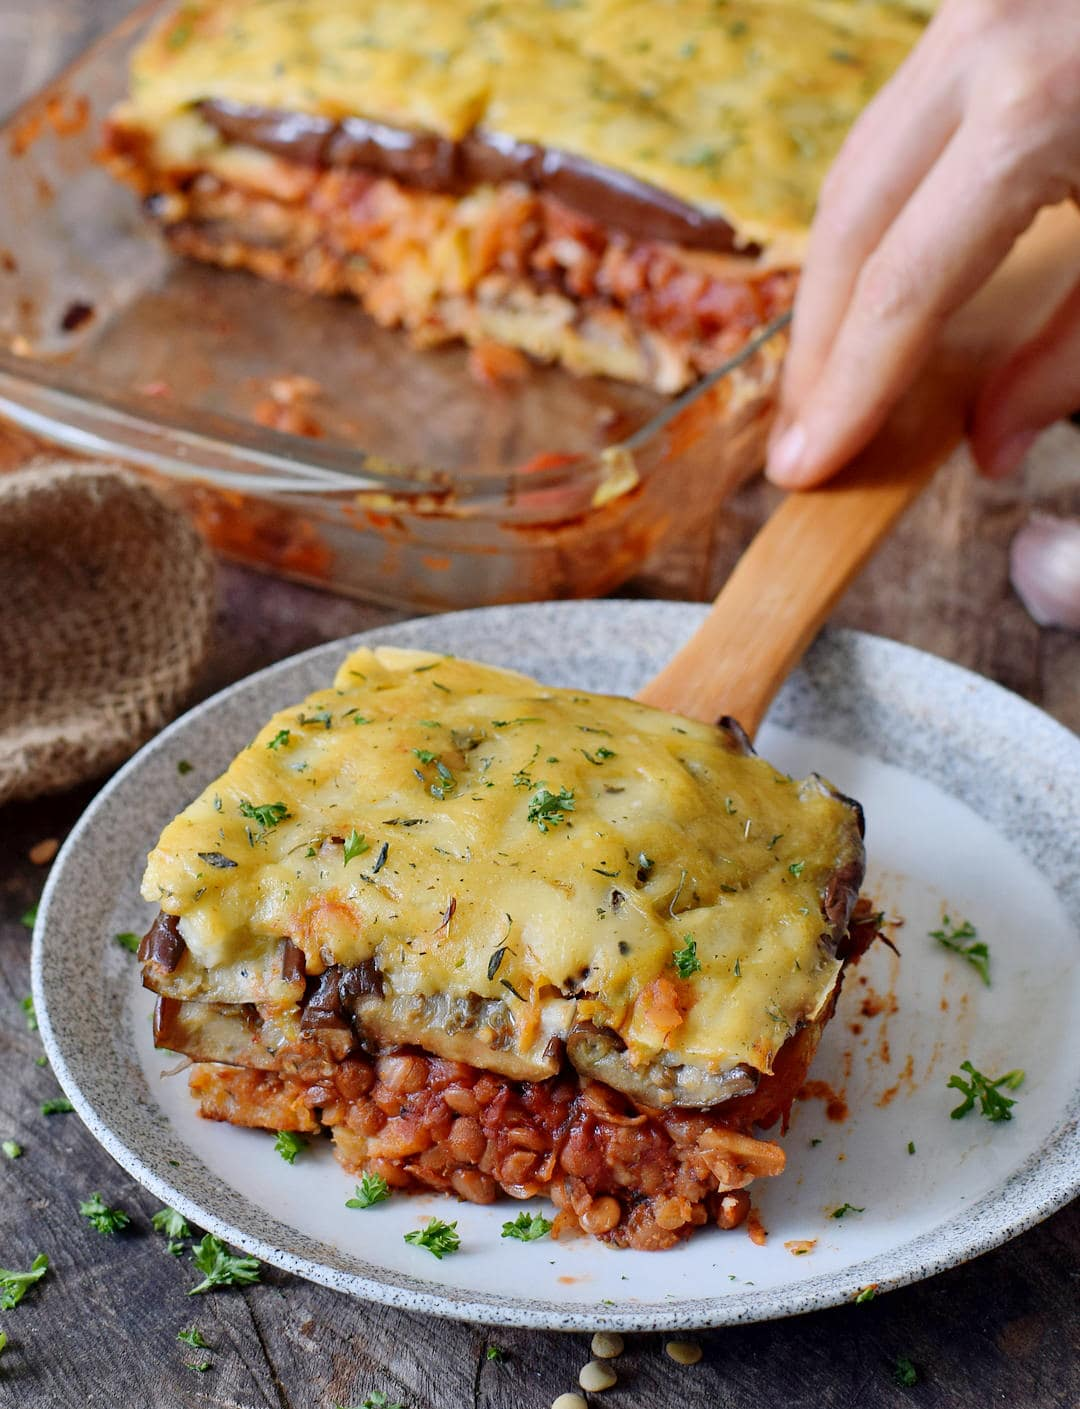 vegan moussaka on a plate with a hand grabbing a wooden spatula